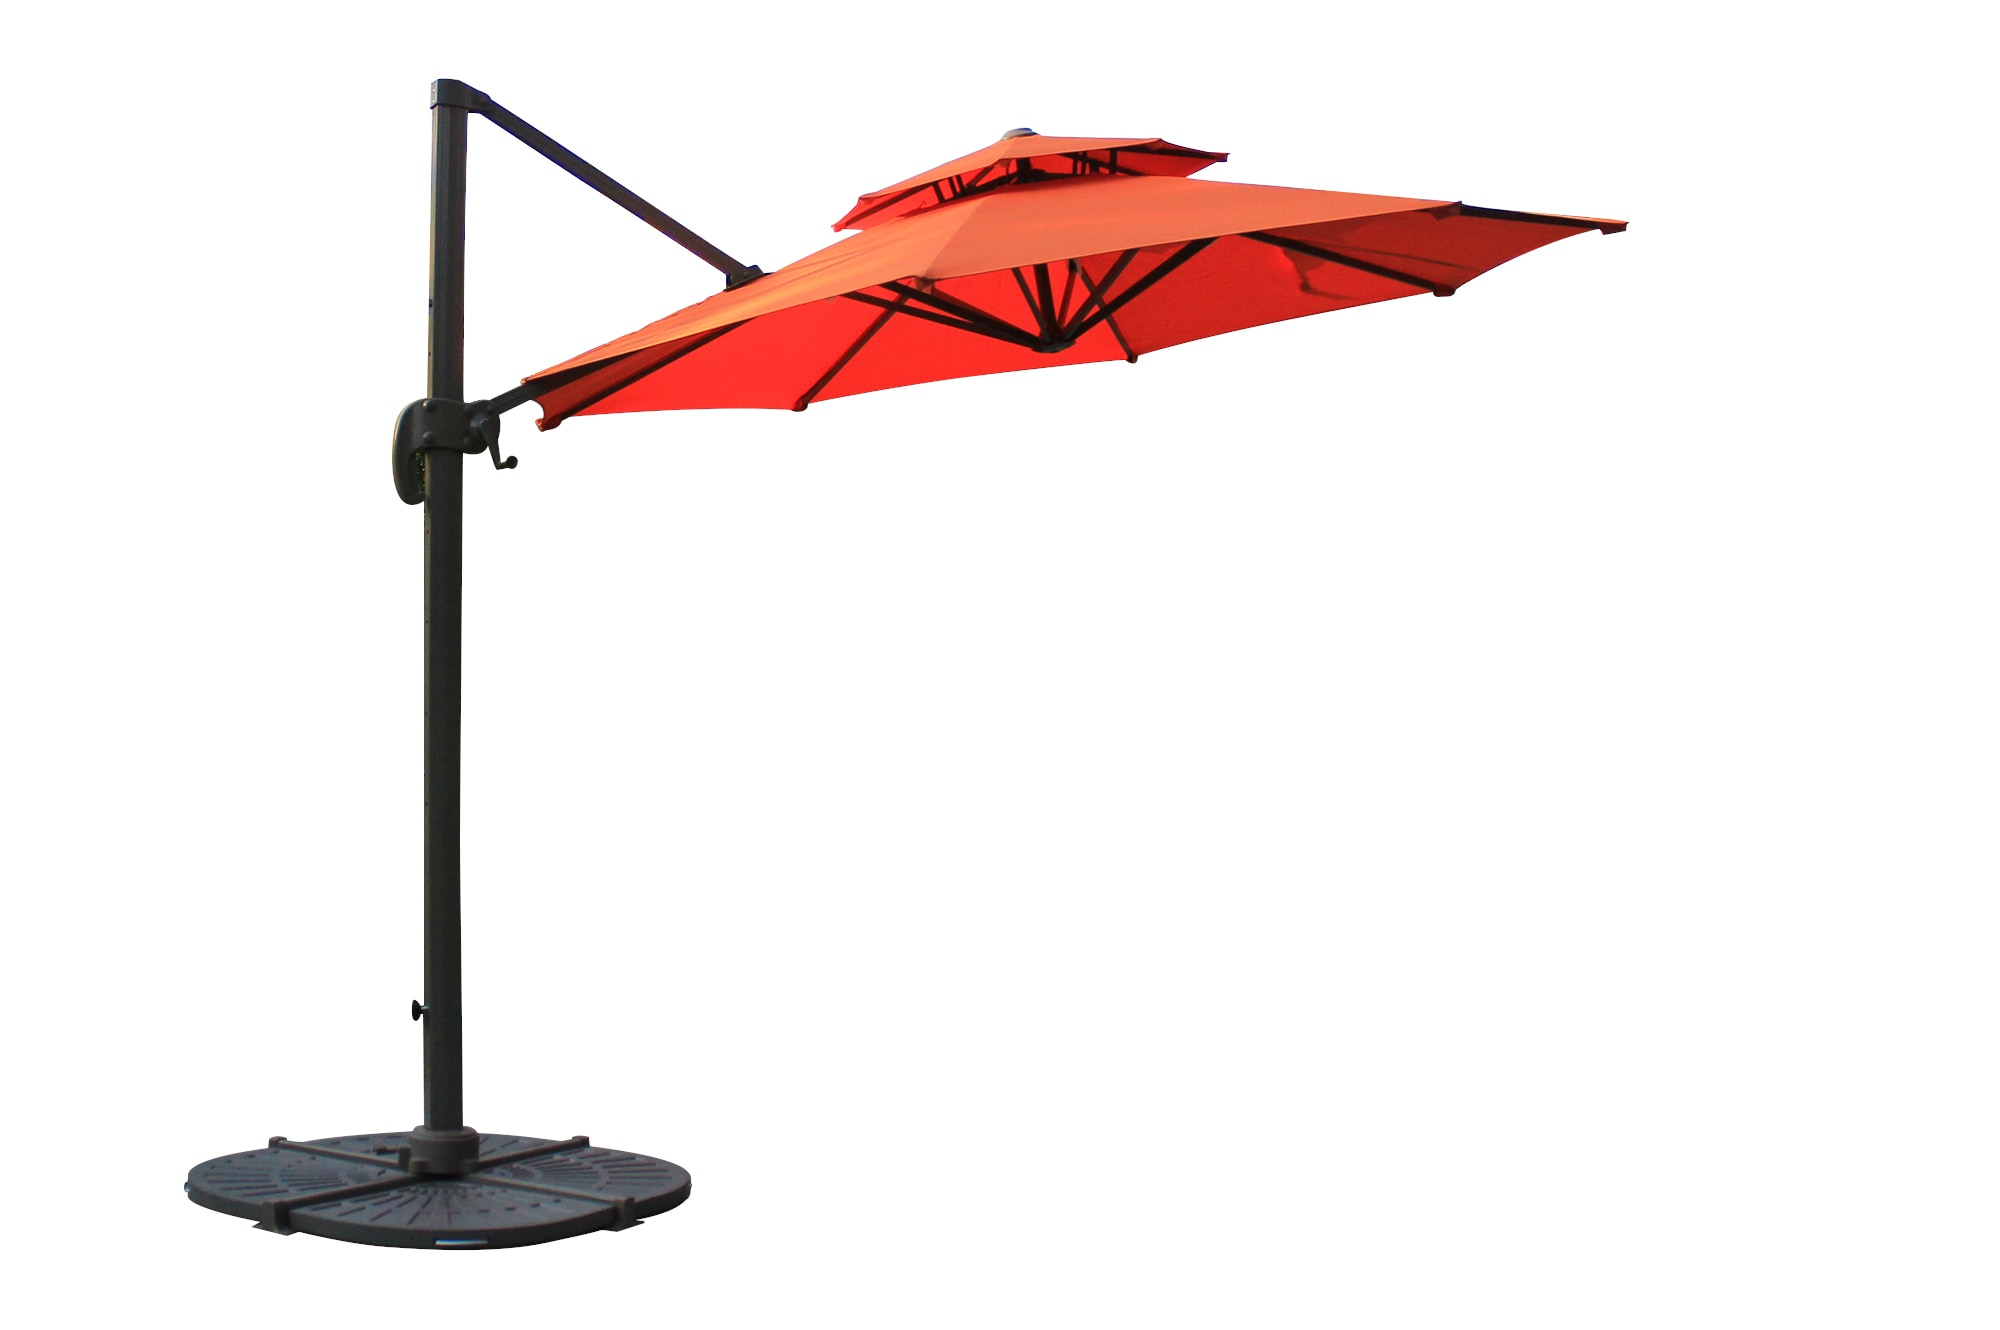 10 ft Round Offset Roma Umbrella with double layer - Terracotta Shade & Cooling Offset Patio Umbrellas 0